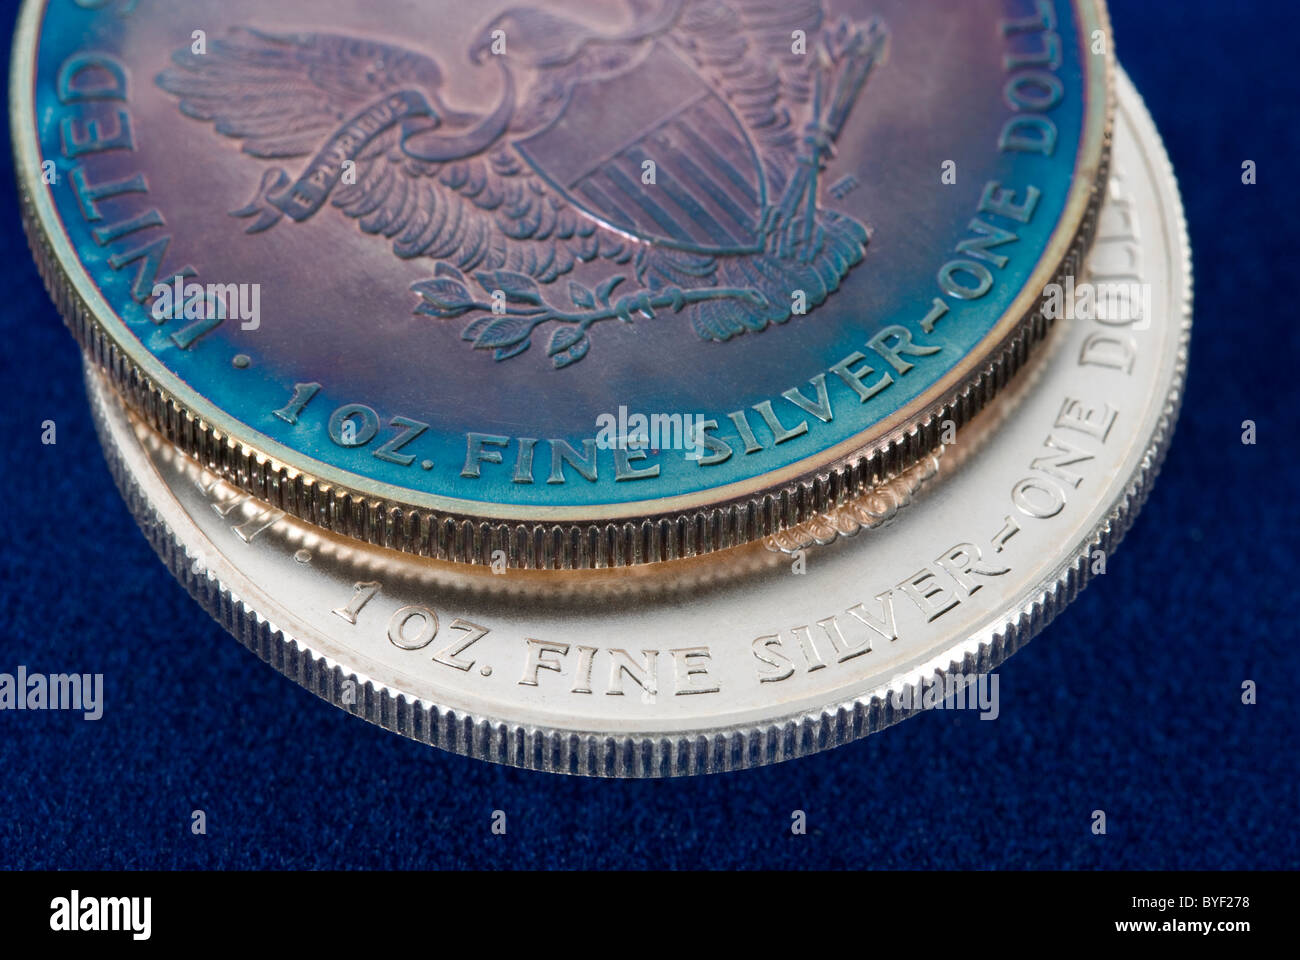 A tarnished silver coin next to a non tarnished one for comparison. - Stock Image